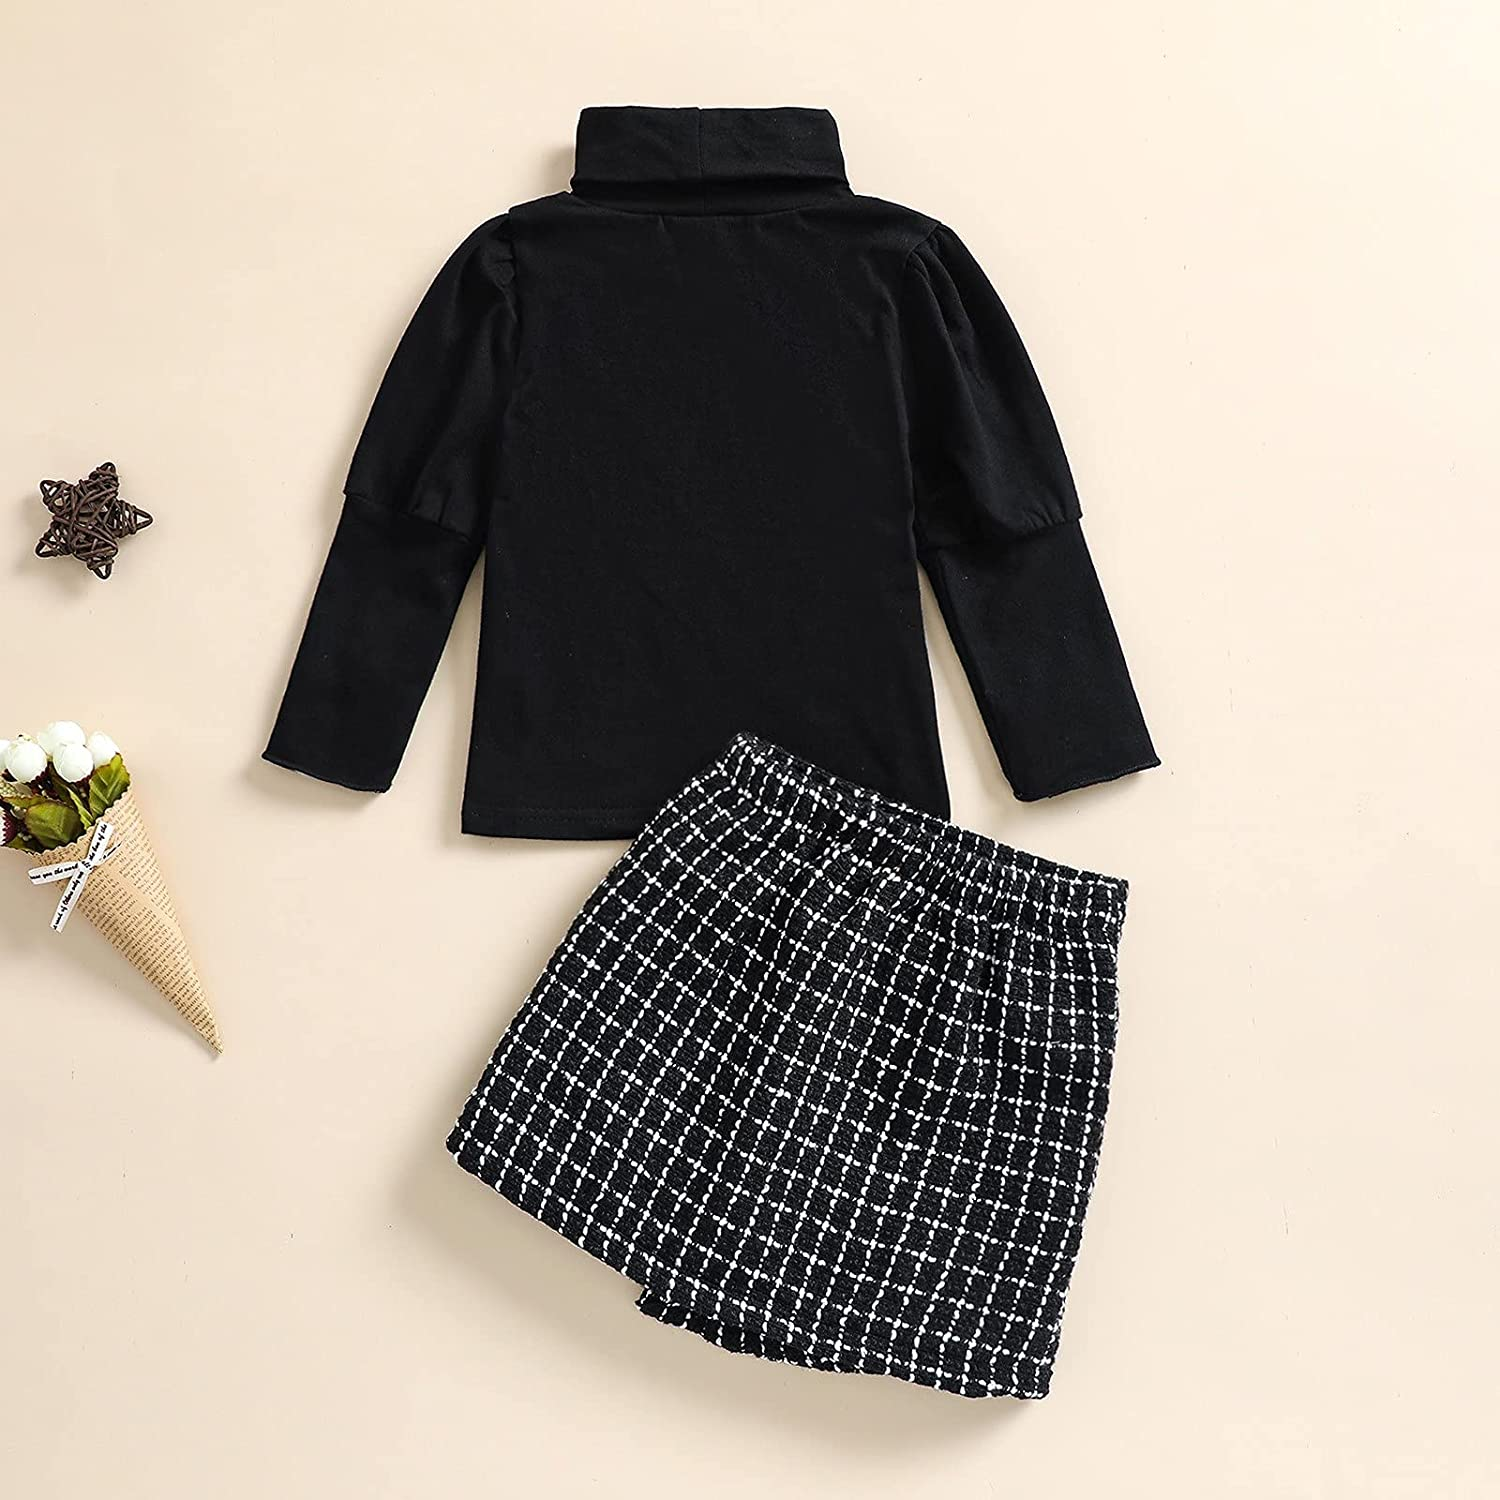 Toddler Baby Girl Fall Winter Clothes Turtleneck Solid Knit Pullover Tops Plaid Button Mini Skirts Set Outfits